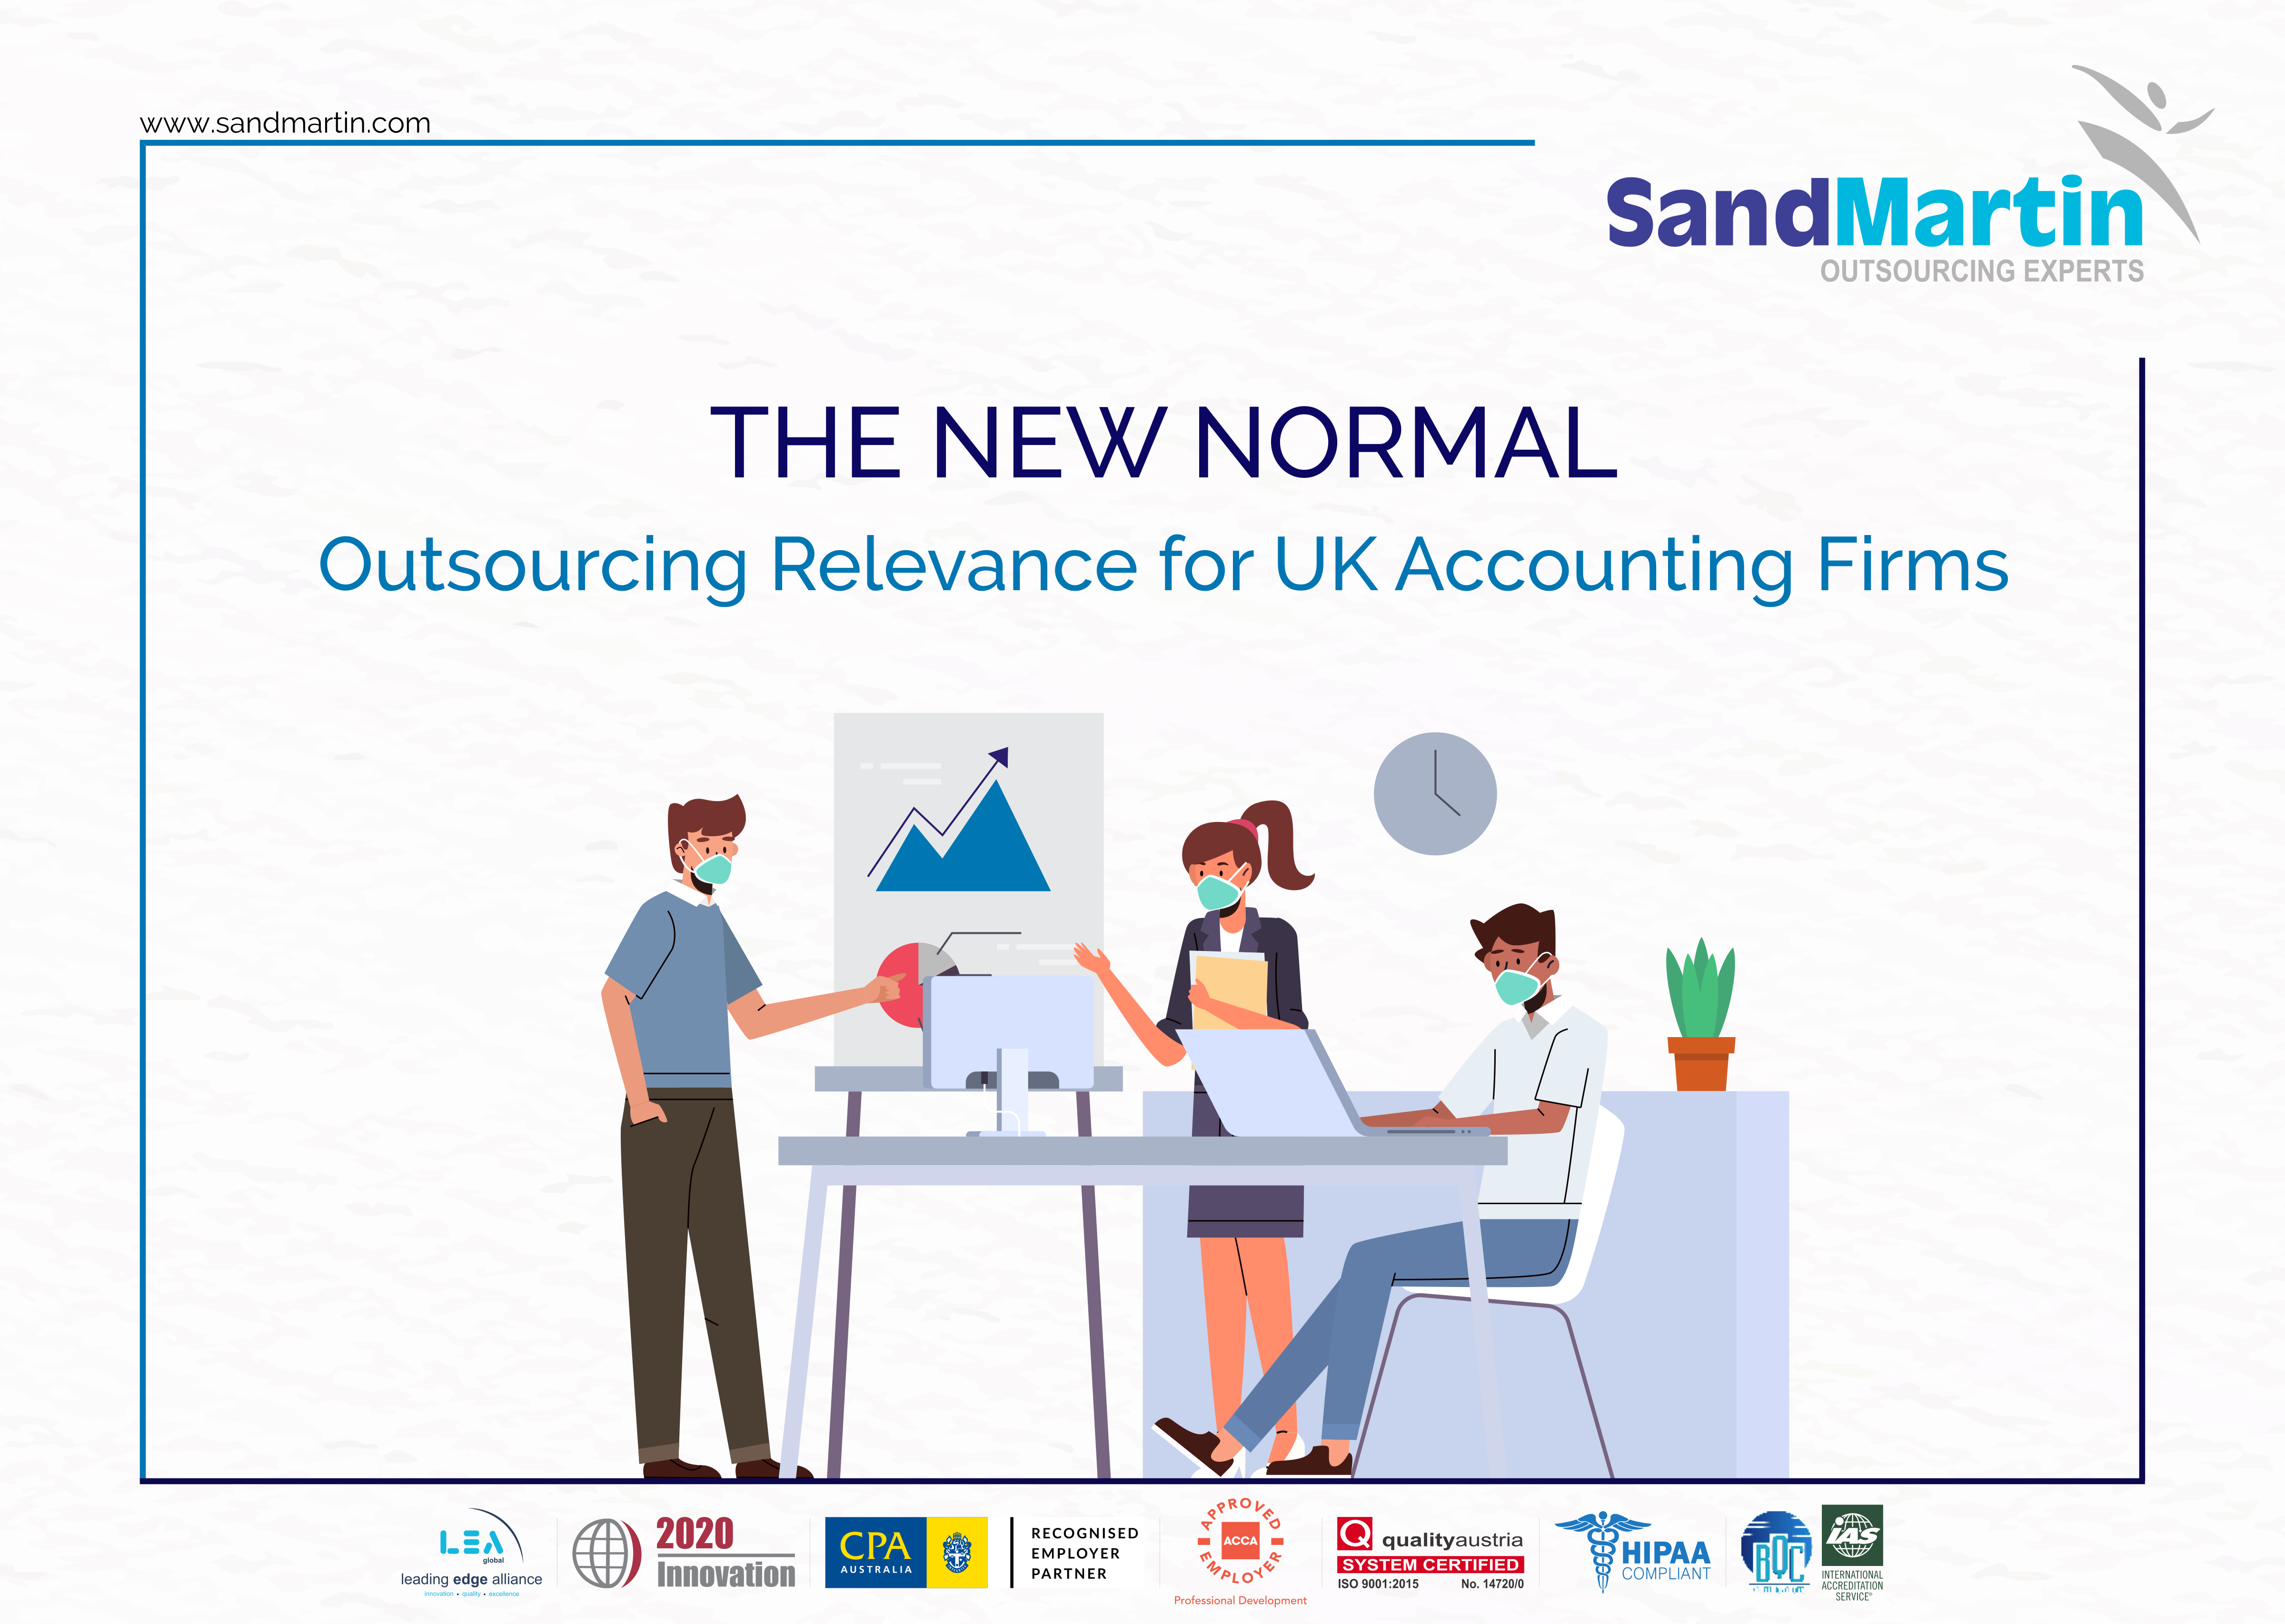 The New Normal Outsourcing Relevance for UK Accounting Firms Body: